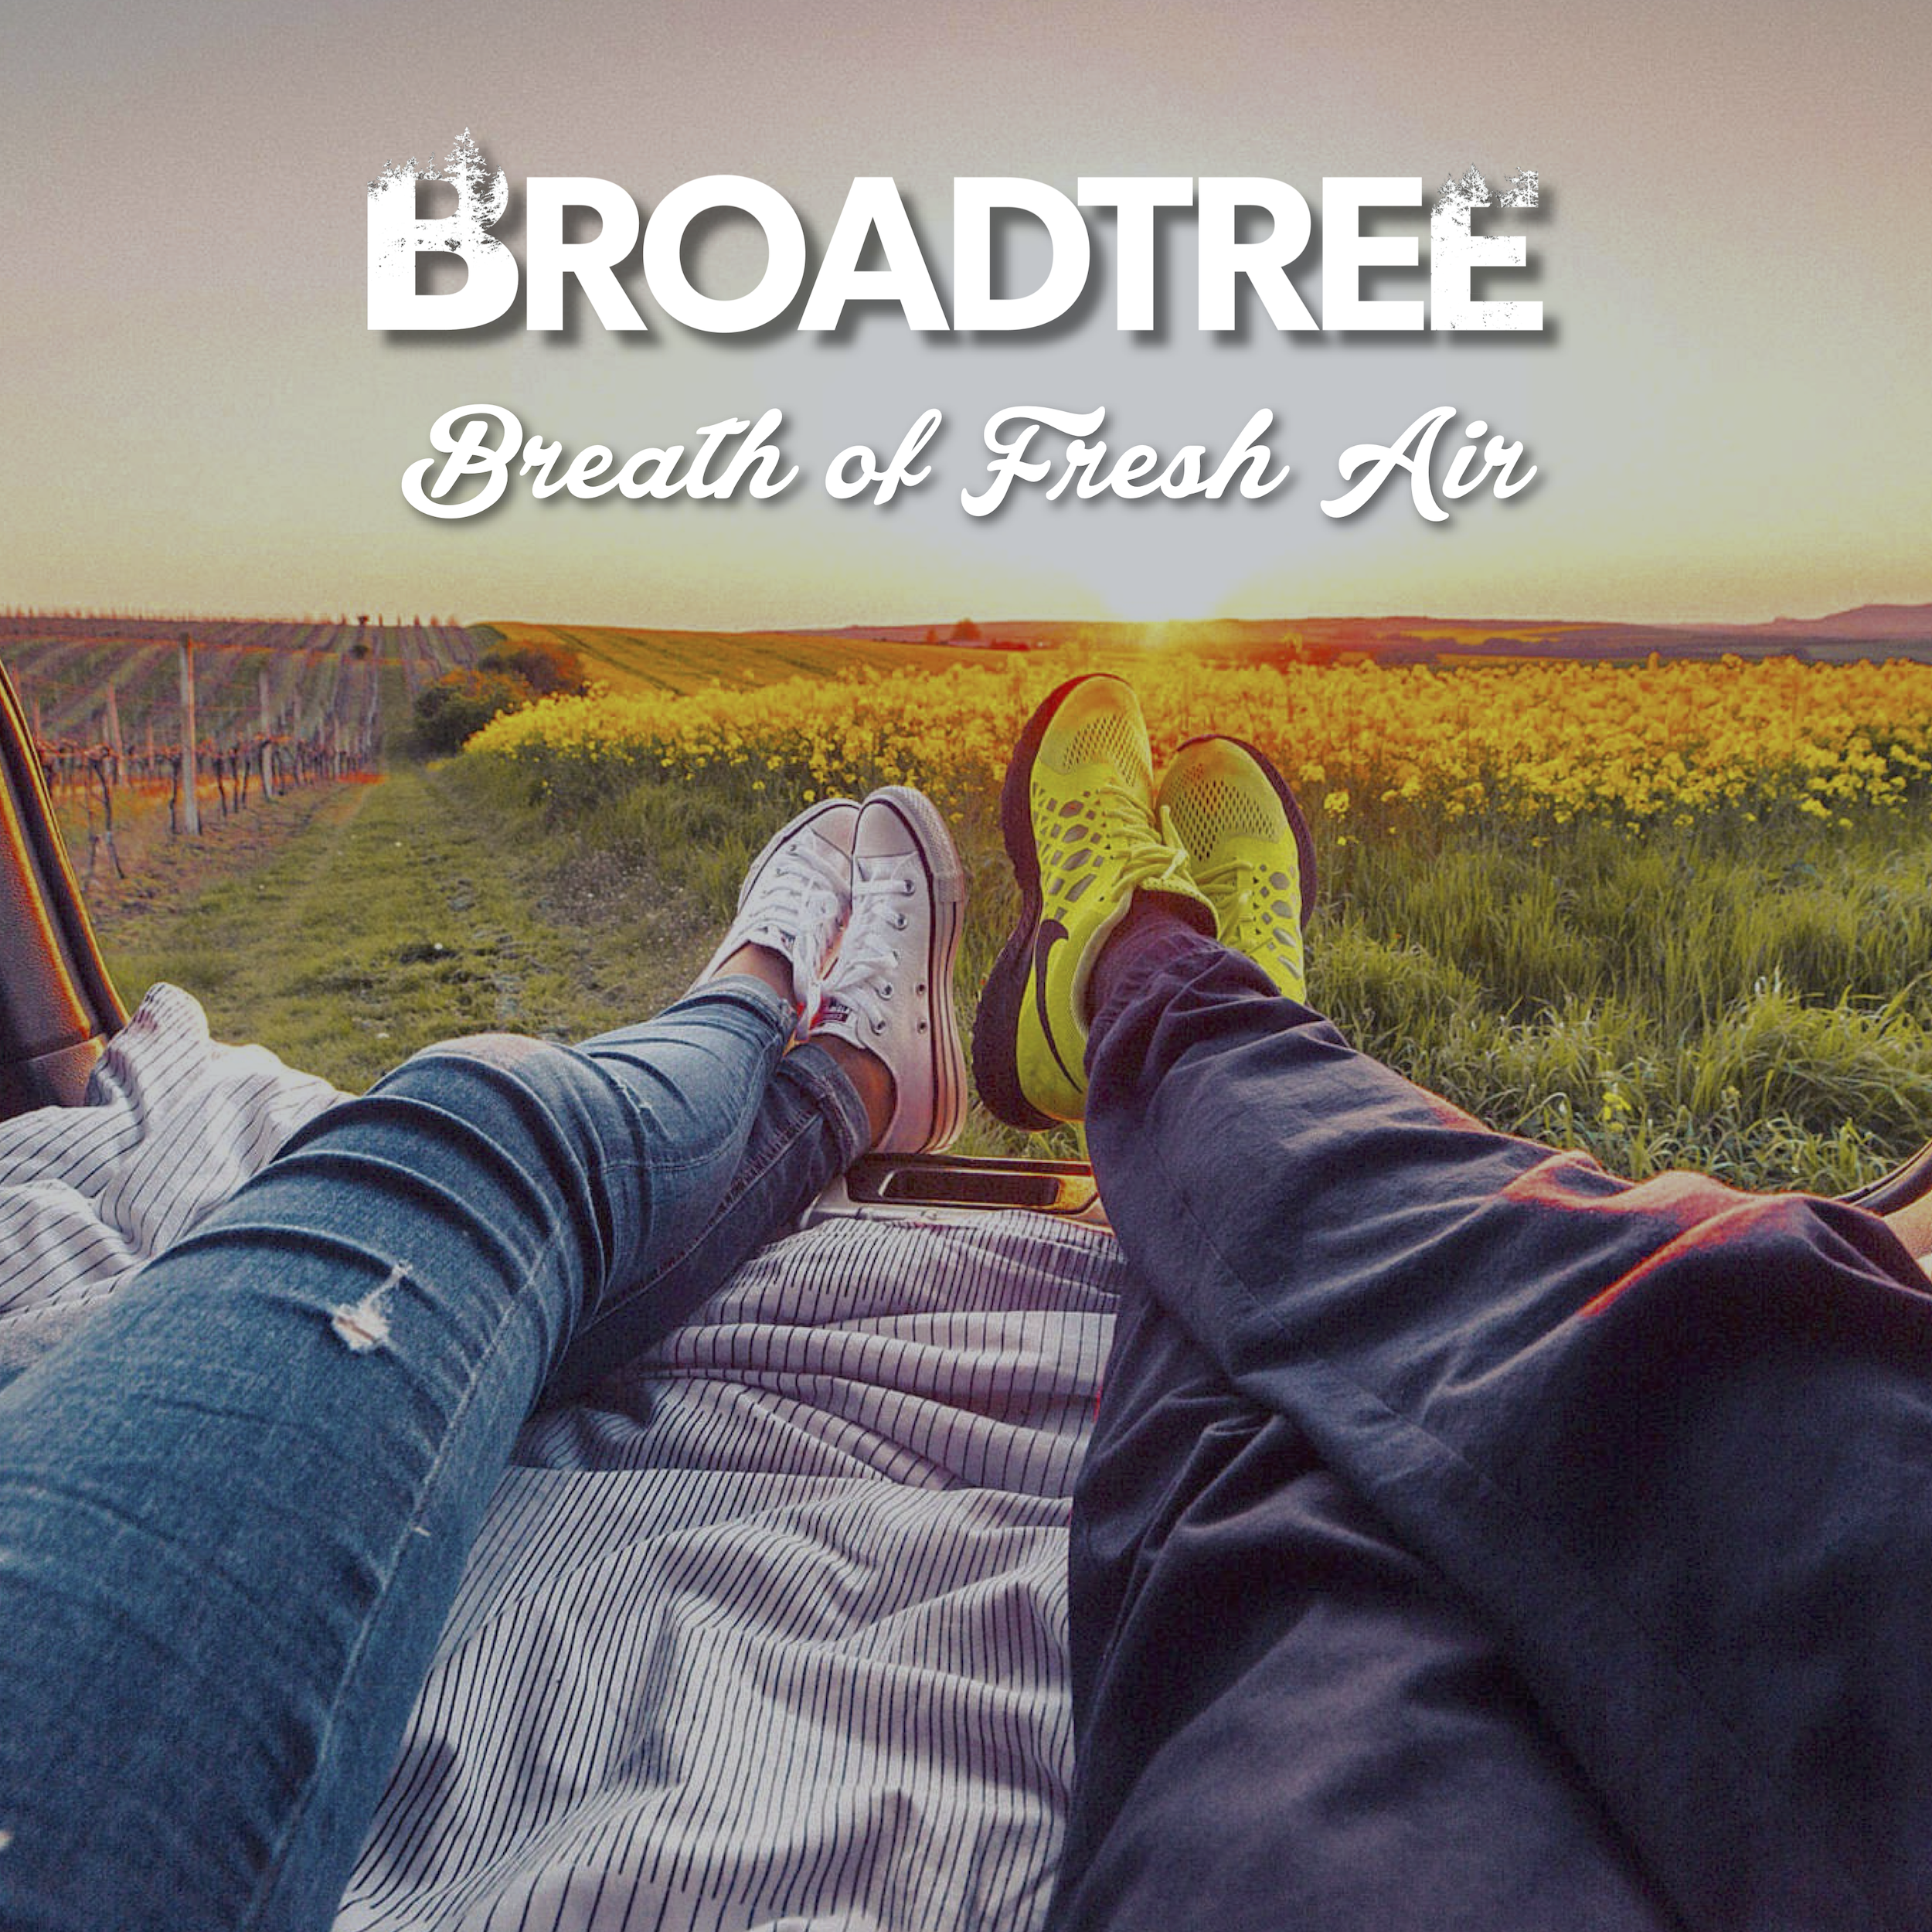 """Read more about the article How is Broadtree's """"Breath of Fresh Air"""" An Inspiration During These Times?"""